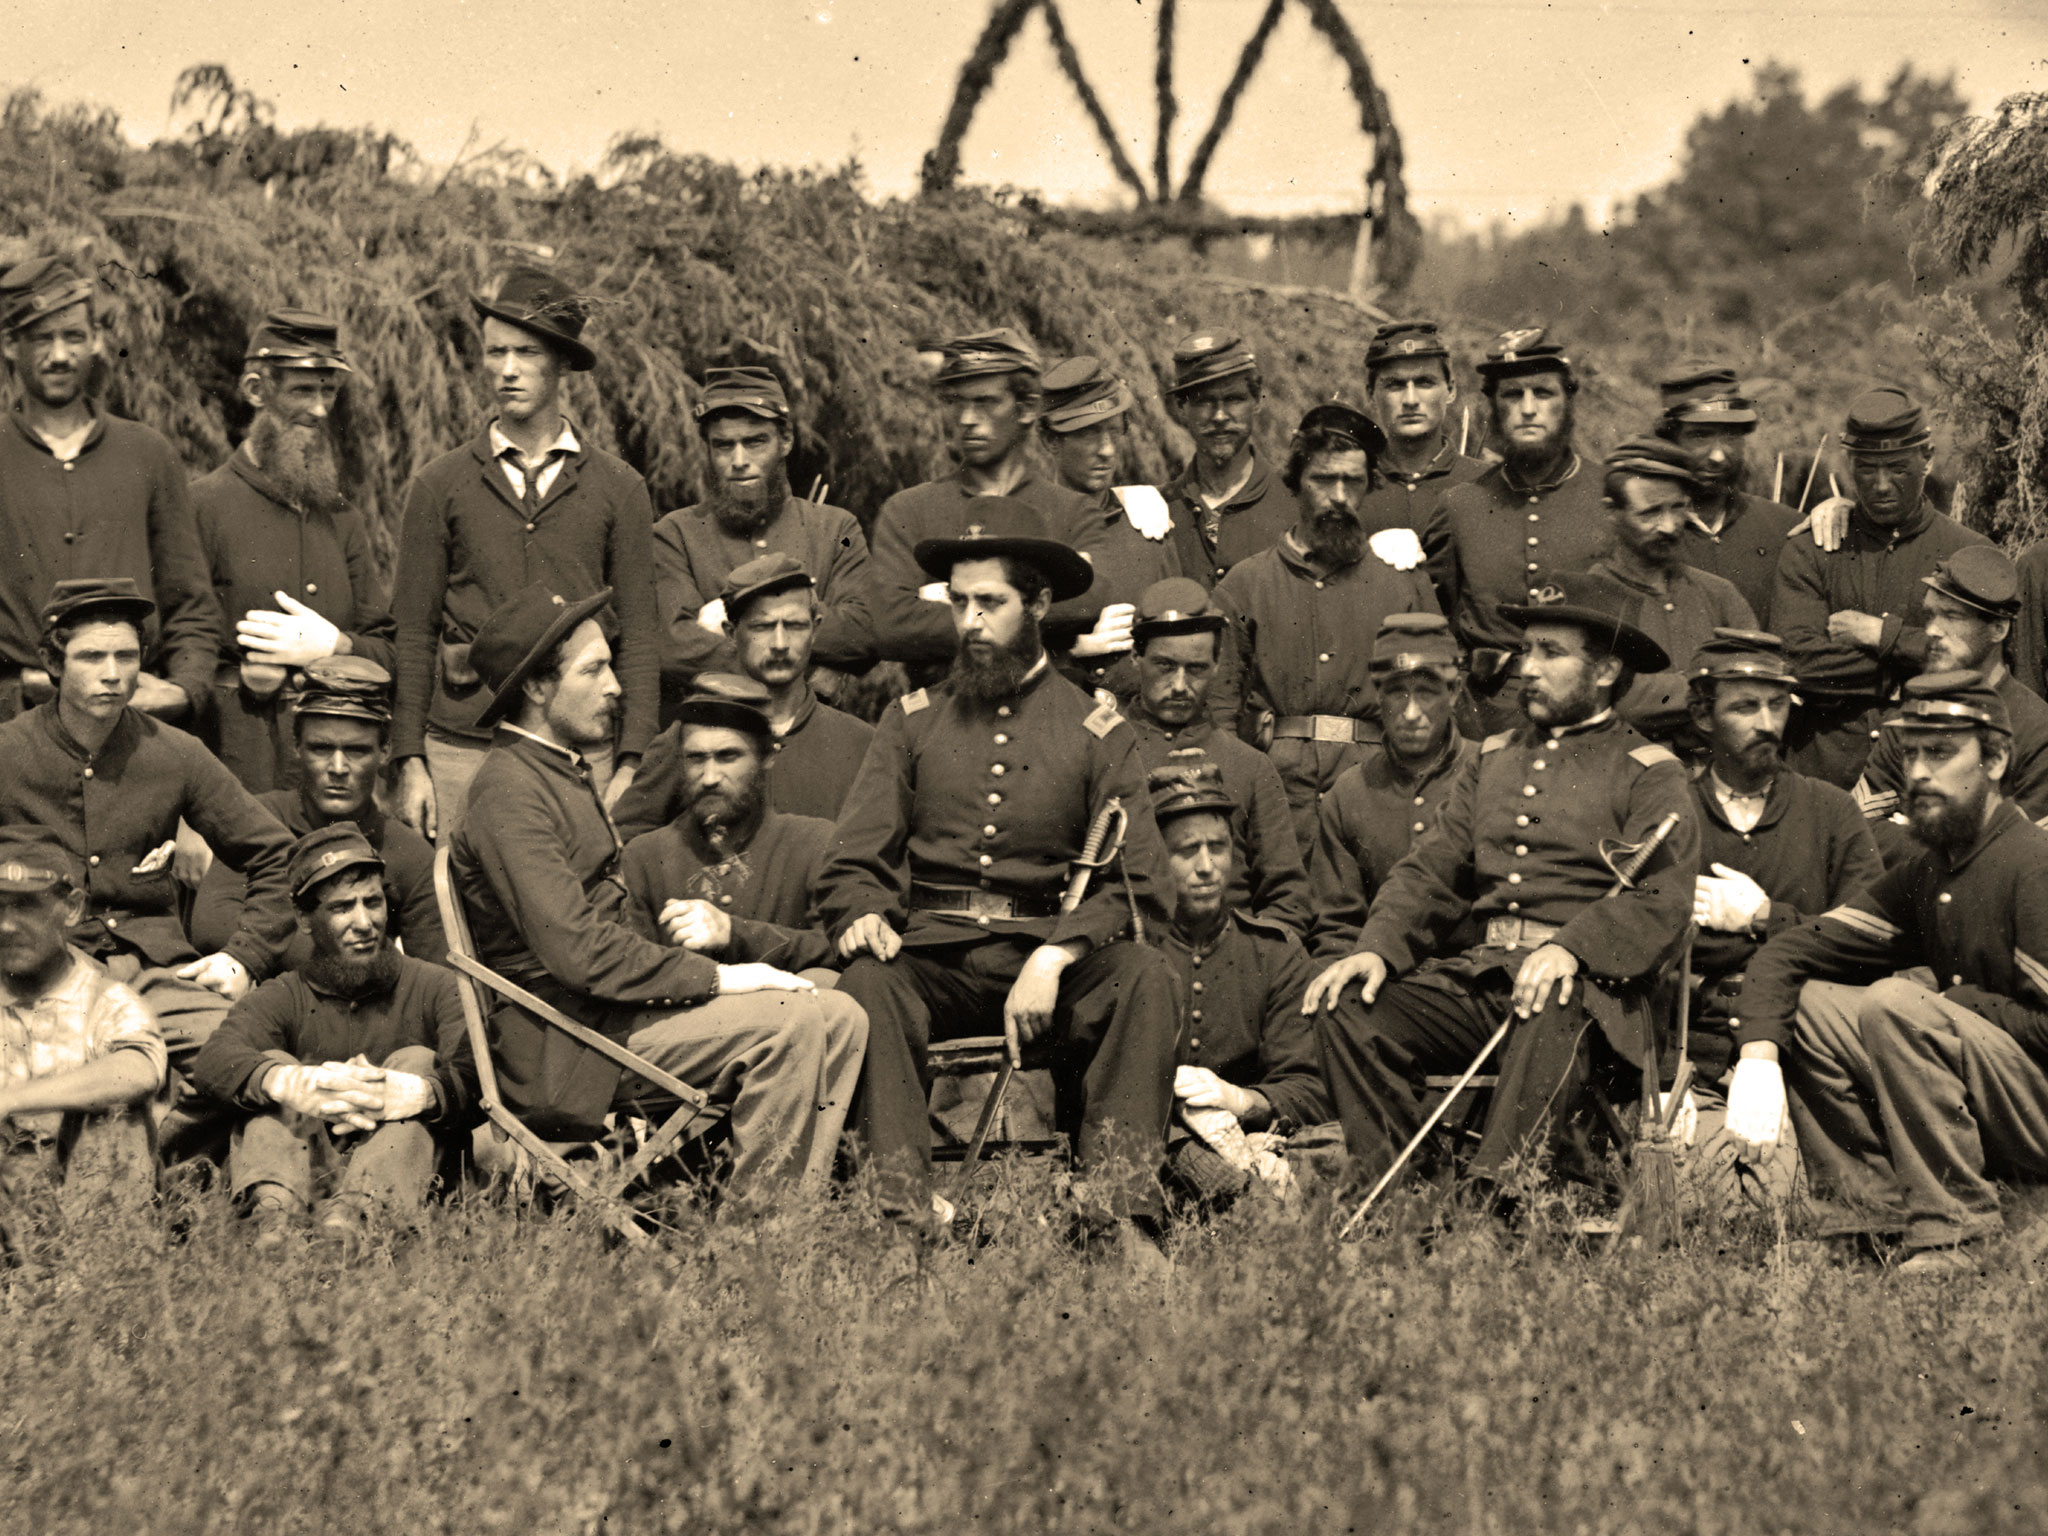 Ball is pictured again in O'Sullivan's group portrait of the enlisted men and officers in Company K of the 93rd. He sits here on the rightin a camp chair with his sword. In the center sits 1st Lt.Robert Stoddart Robertson (1839-1906), who received the Medal of Honor for his courage on May 8, 1864, at Corbin's Bridge, Va. Library of Congress.